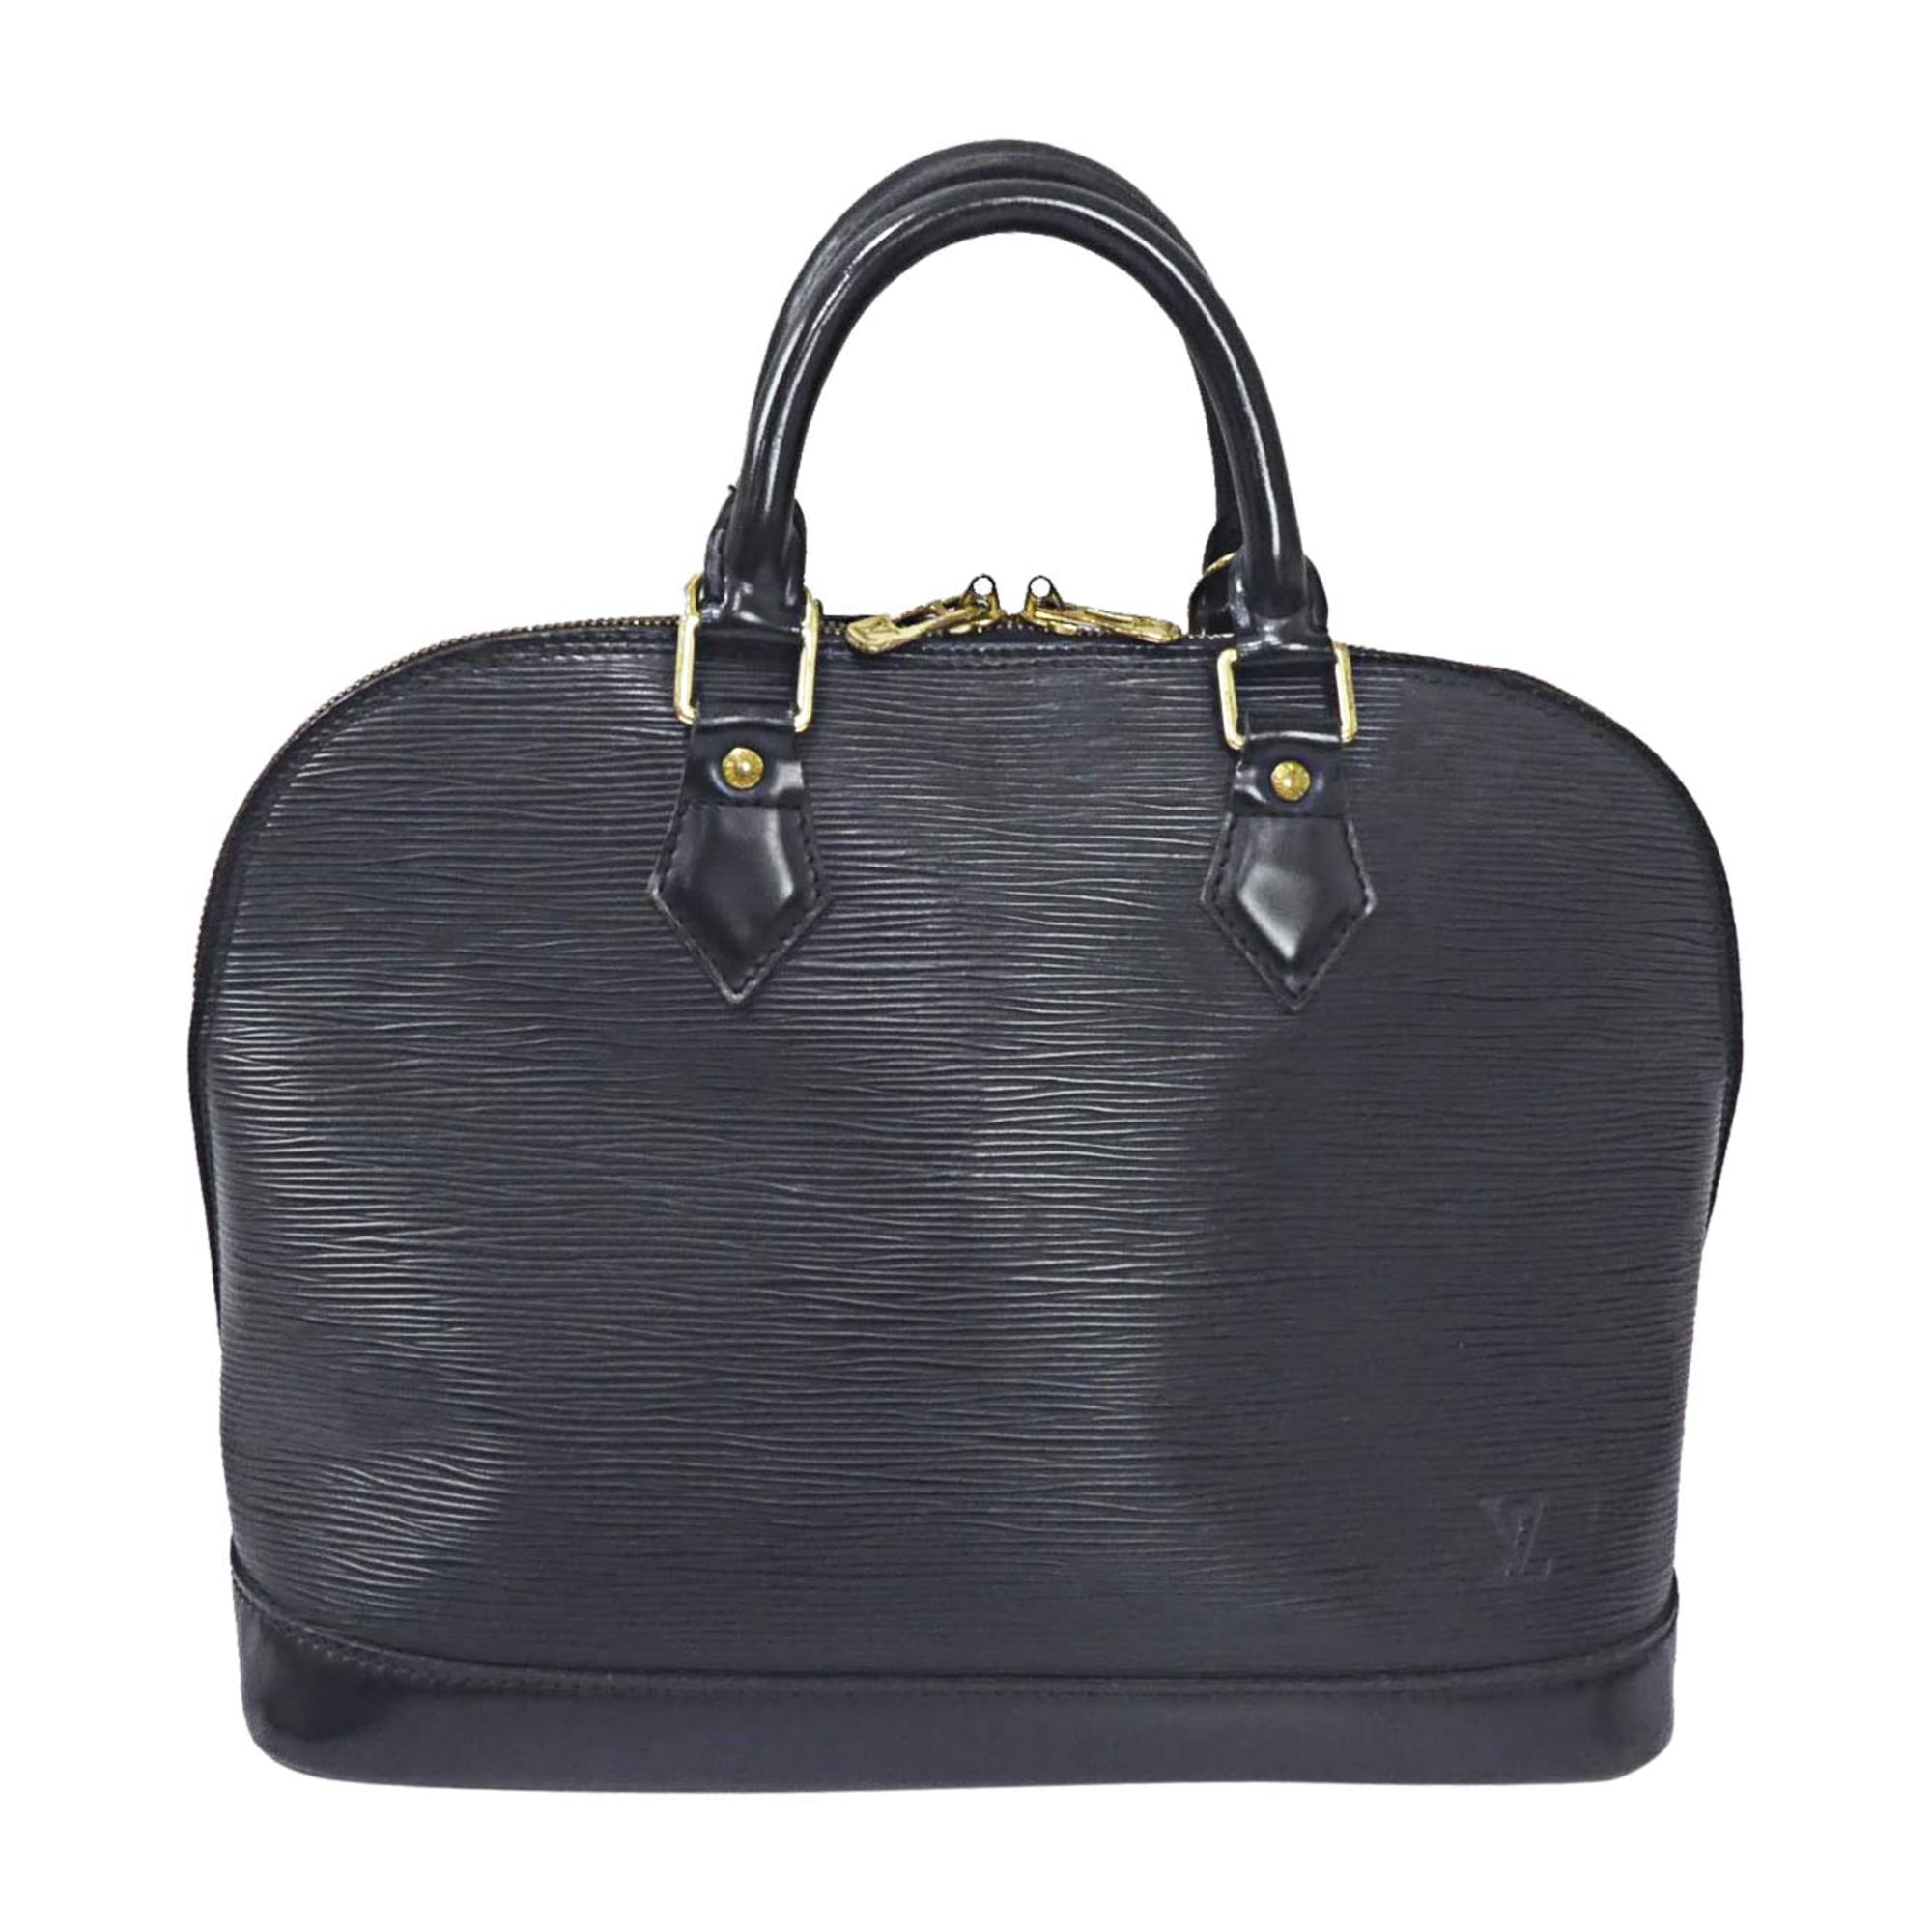 Leather Handbag LOUIS VUITTON Alma Black